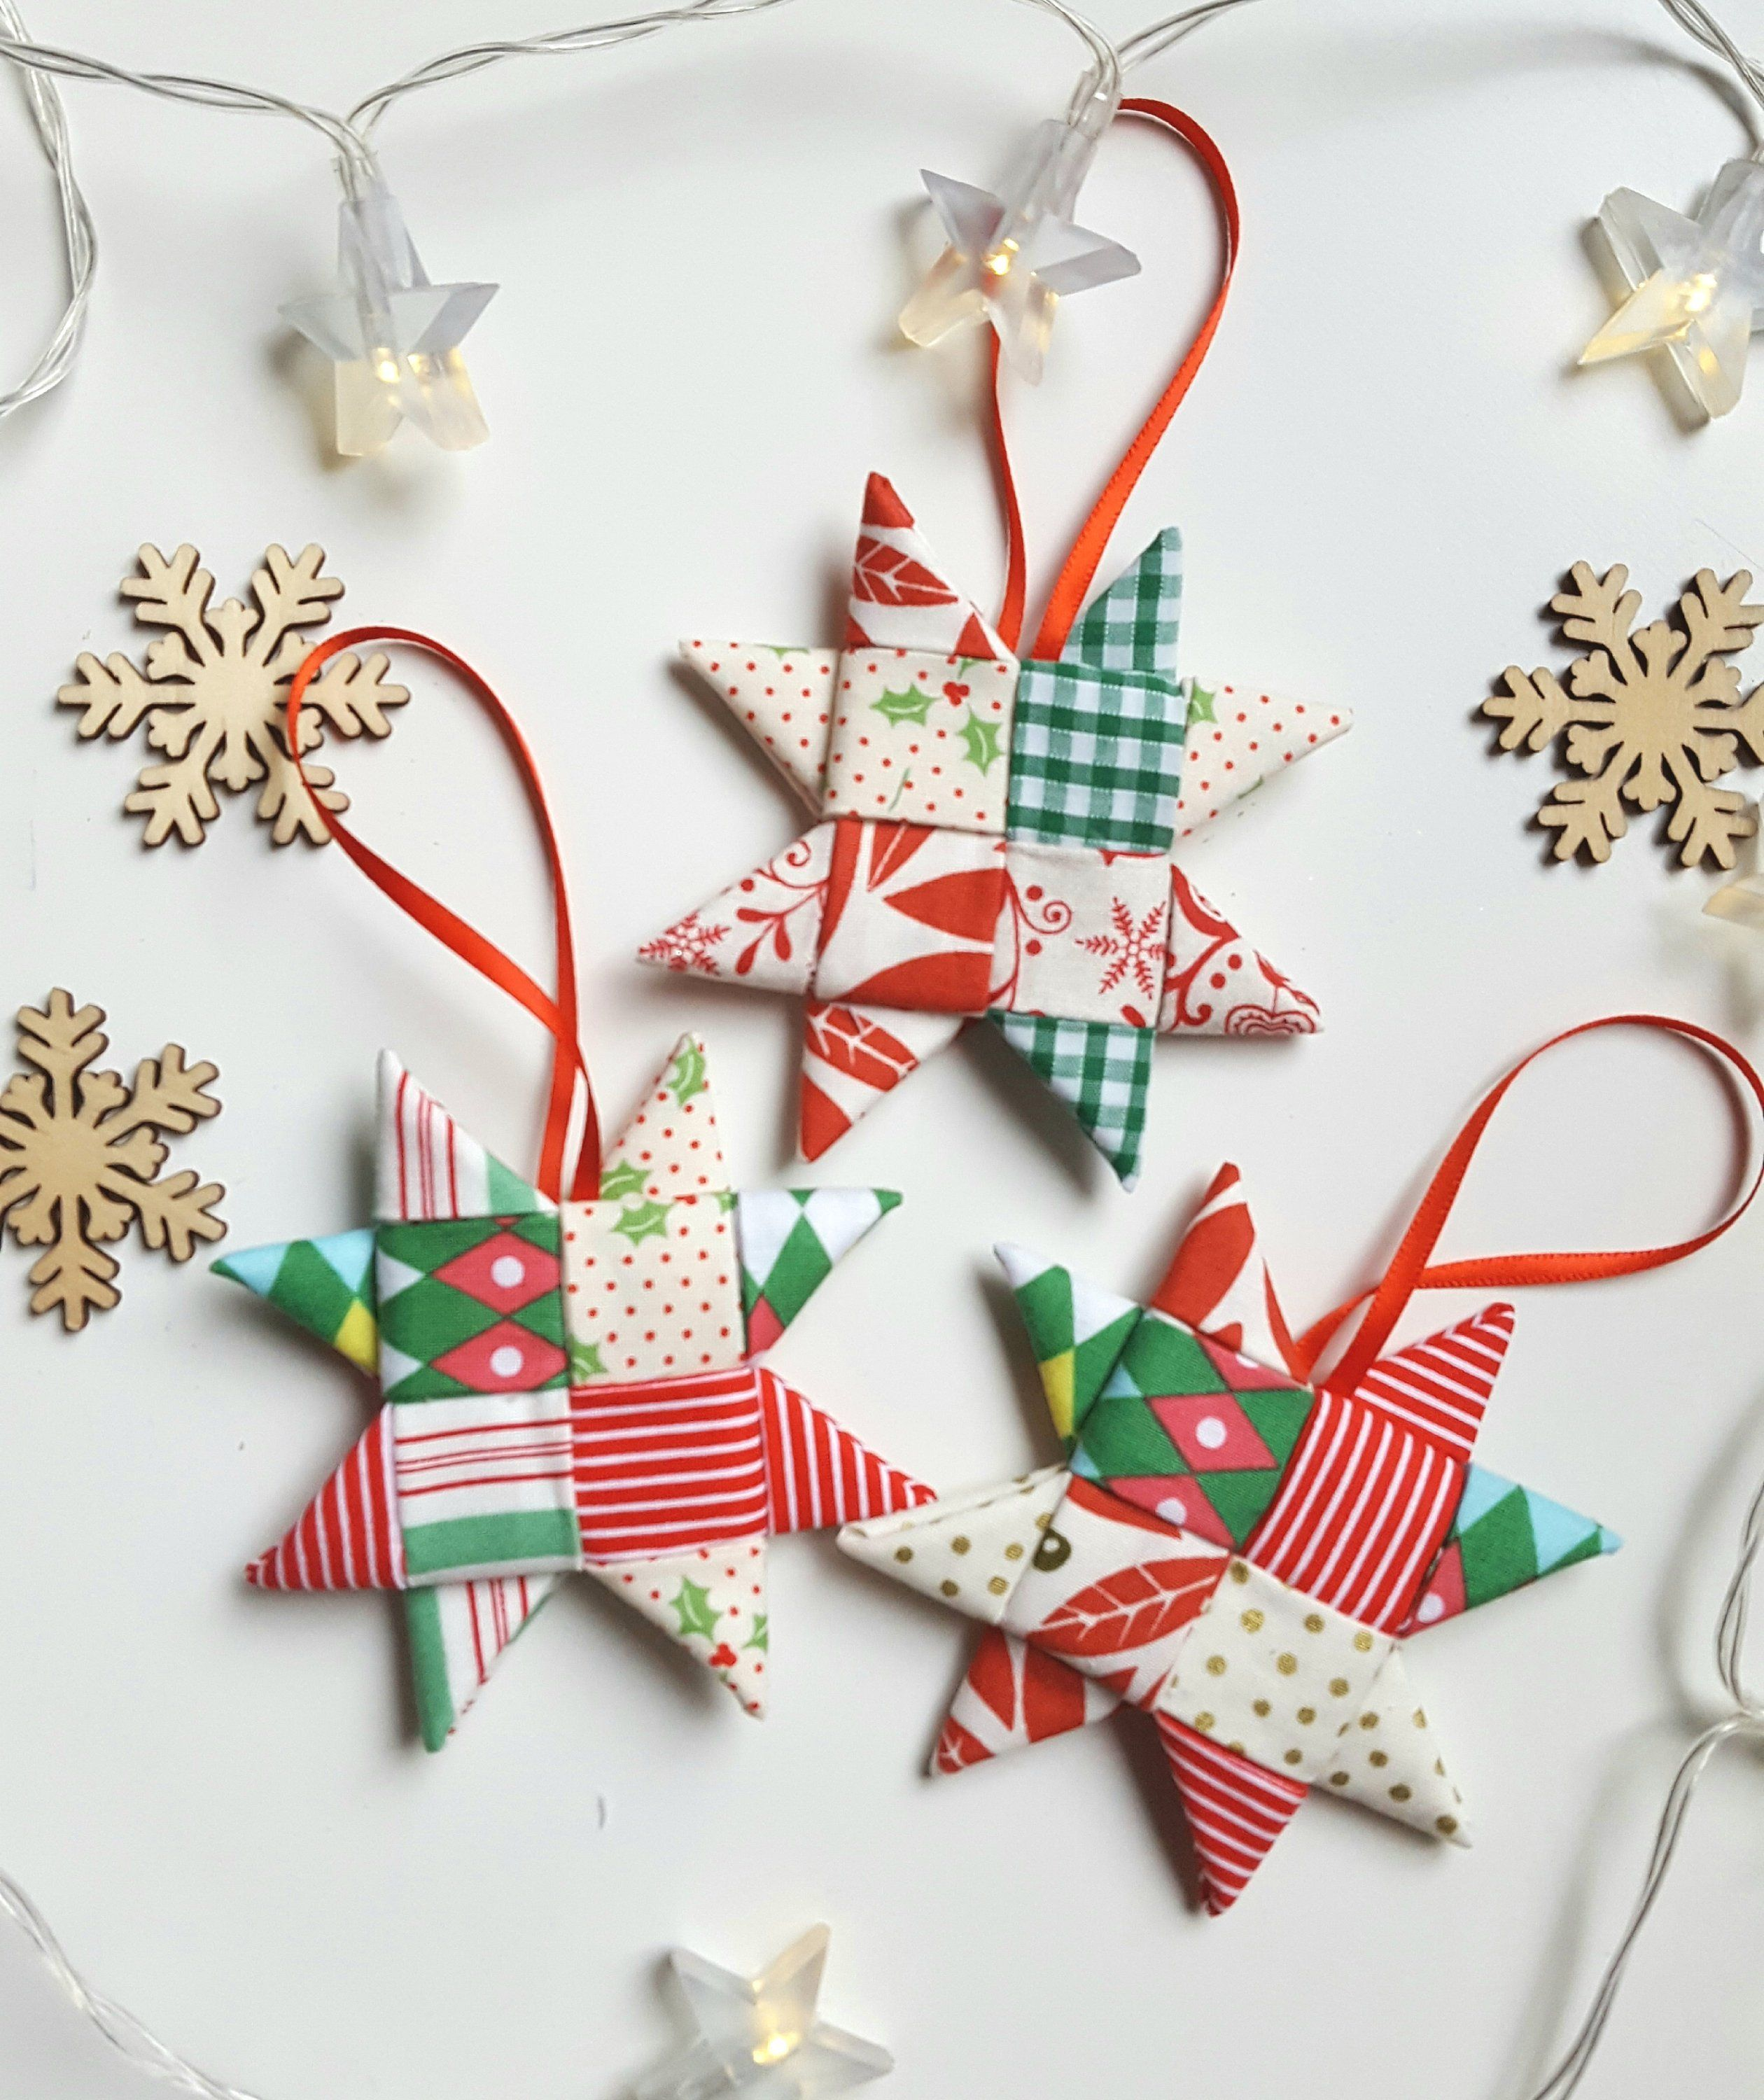 Christmas Decorations Fabric Tree Decorations Christmas Stars Set Of 3 Handmade Fabric Christm Fabric Tree Fabric Christmas Trees Christmas Tree Decorations